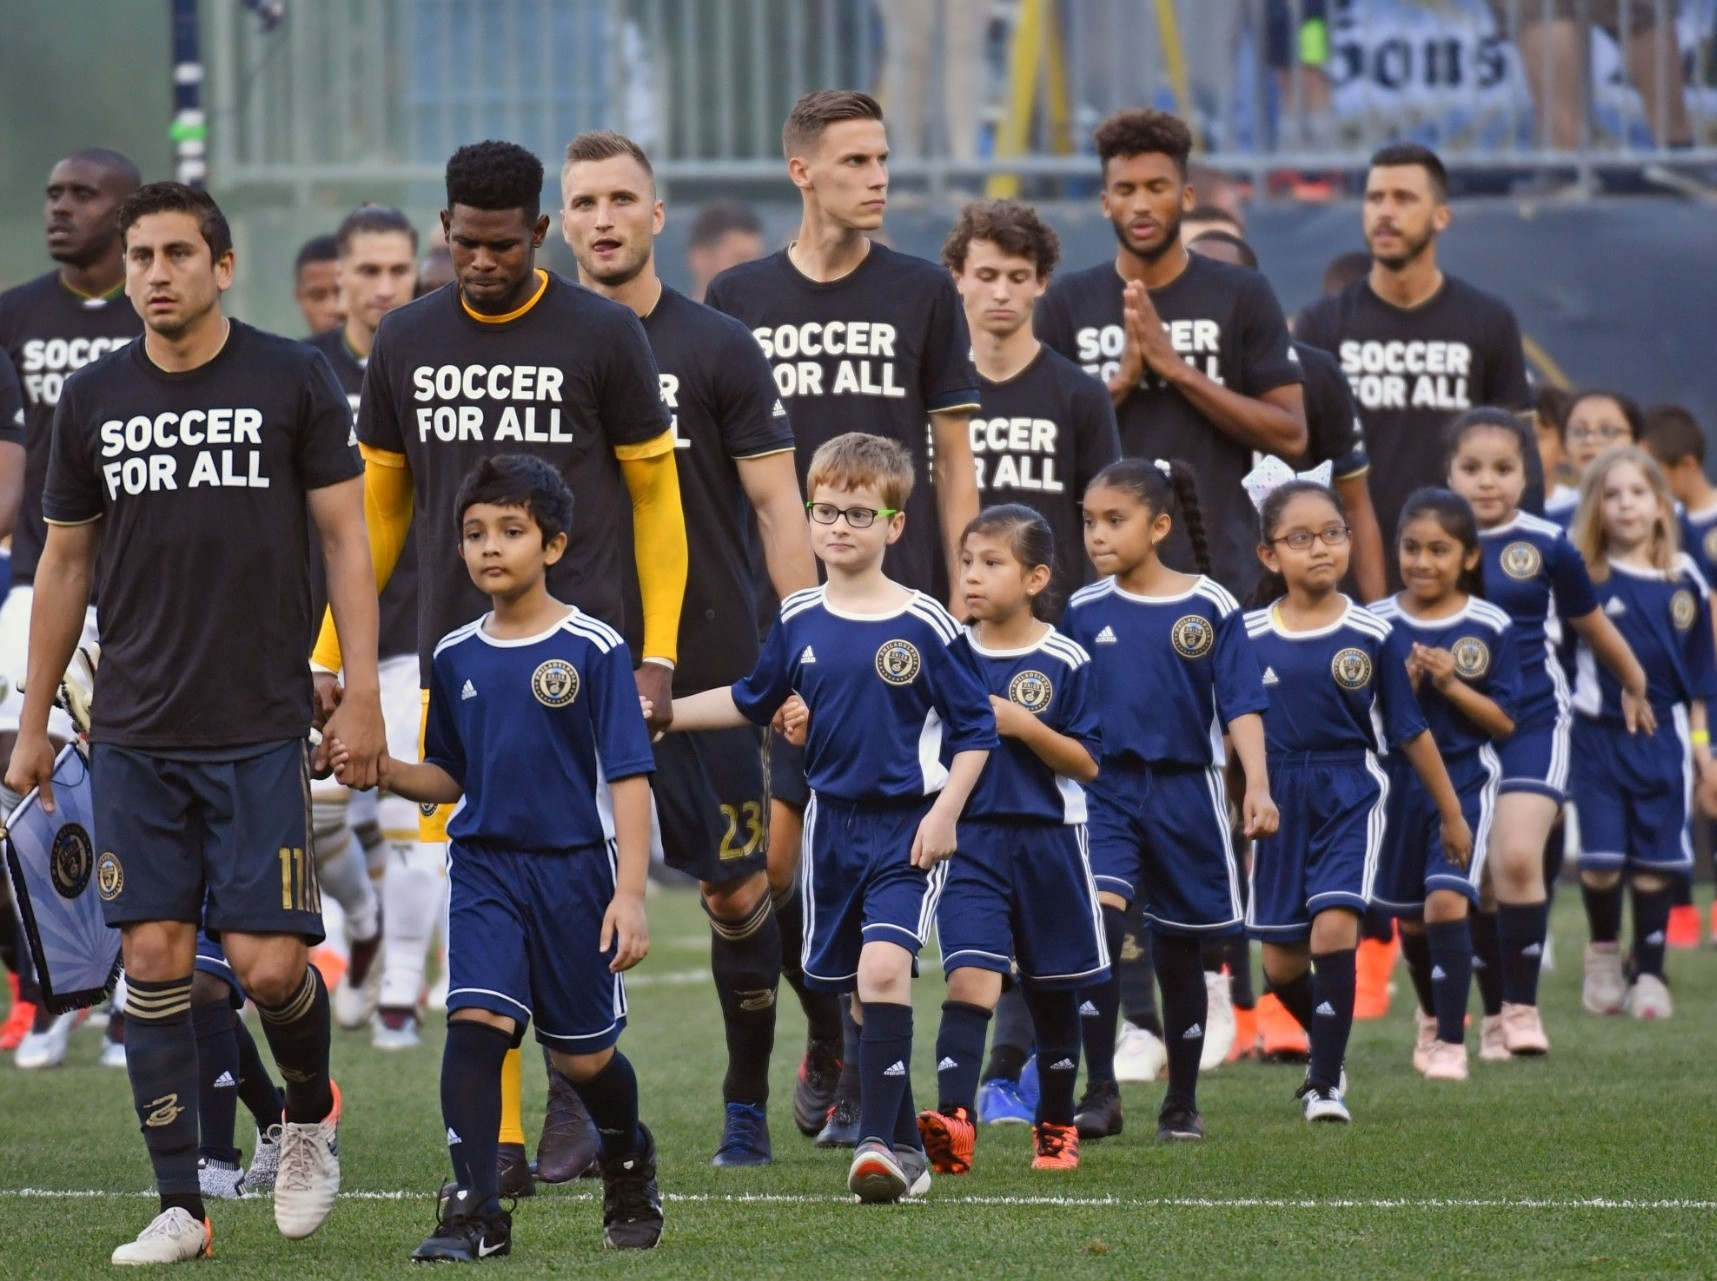 Members of youth soccer teams walk onto the field with the Philadelphia Union before a match against the Portland Timbers at Talen Energy Stadium, Philadelphia, Pa., May 25, 2019, photo by Eric Hartline/USA Today Sports via Reuters